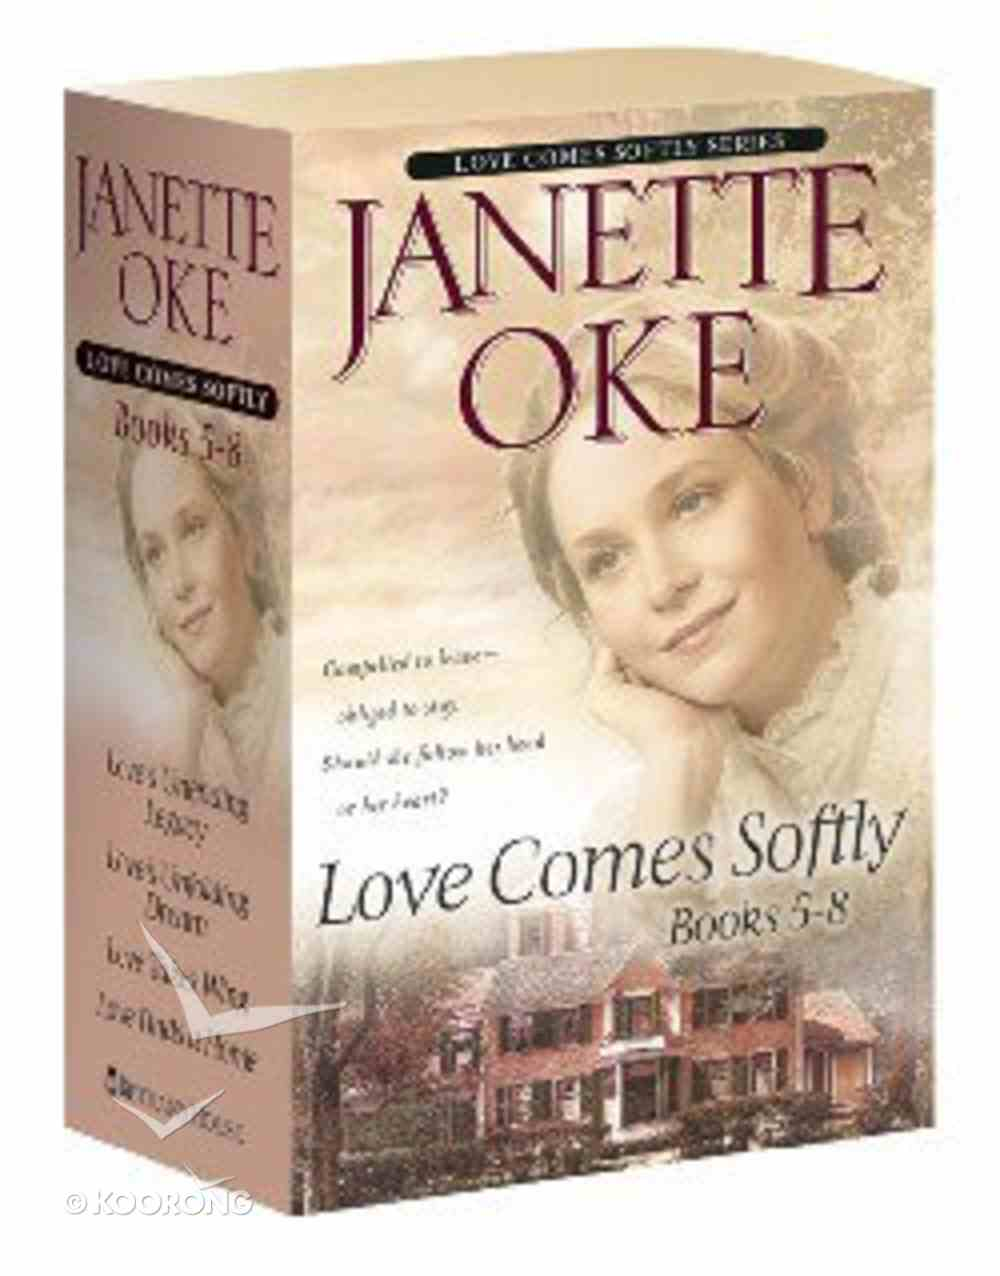 Love Comes Softly (Boxed Set 5-8) (Love Comes Softly Series) Pack